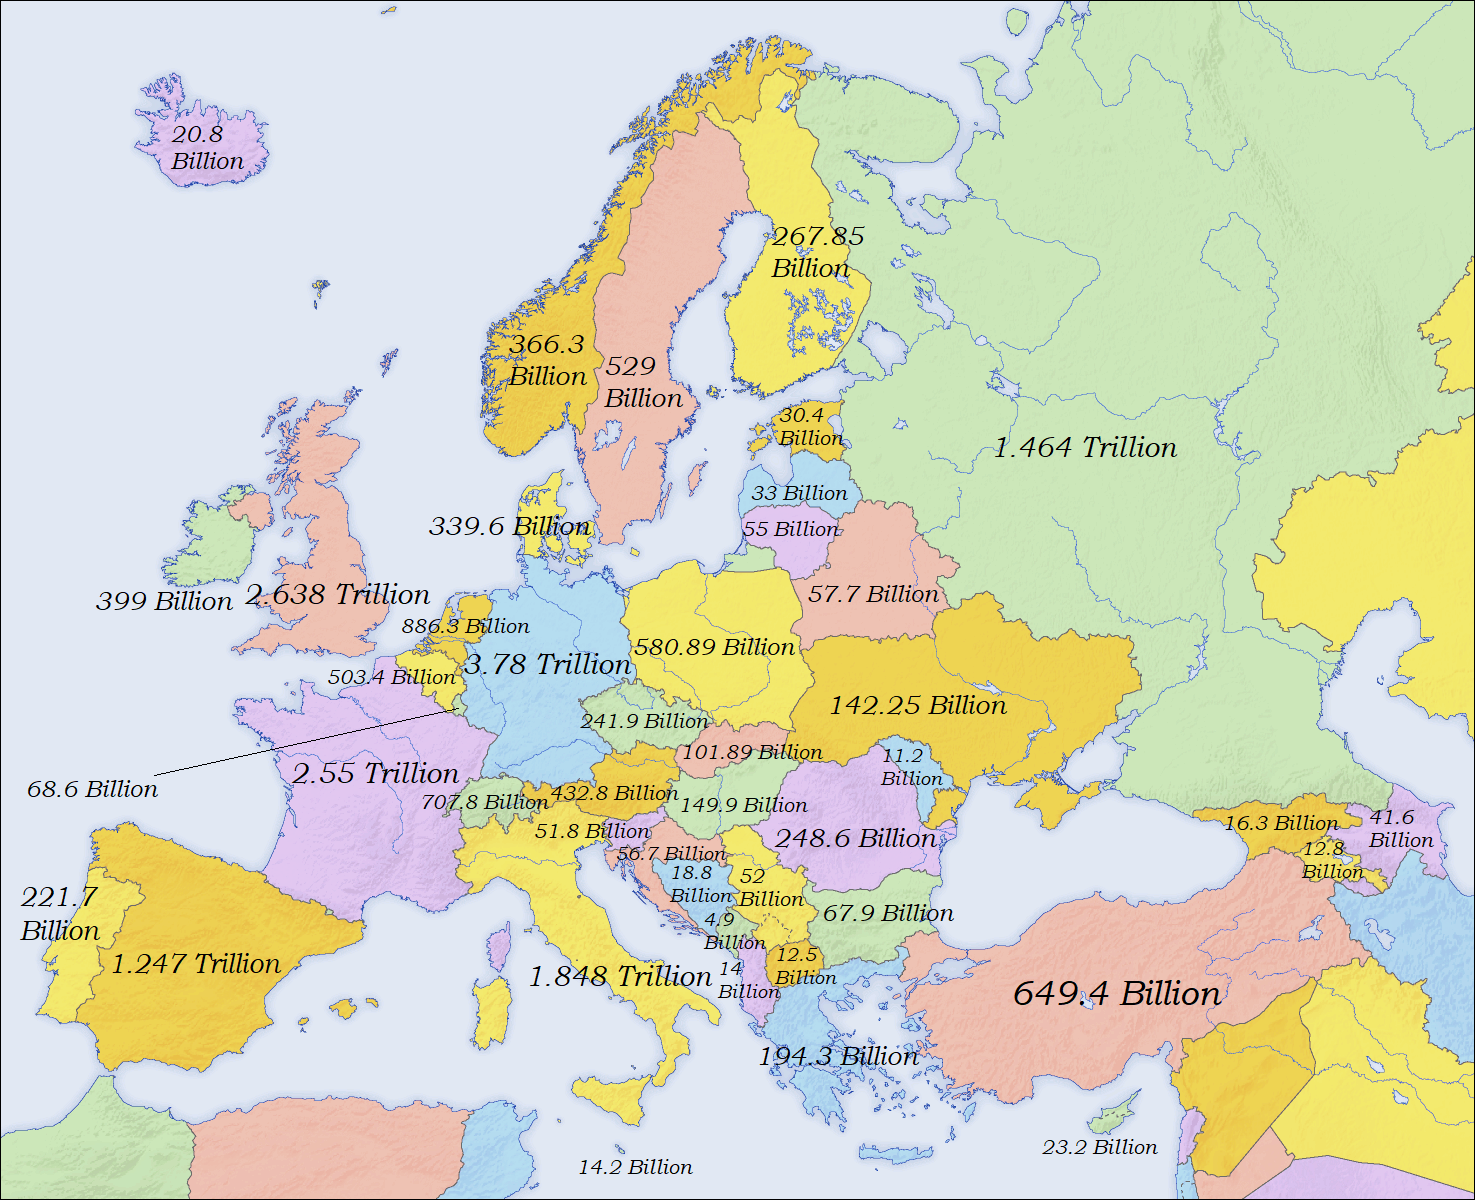 The total GDP of European each country in 2020, in USD